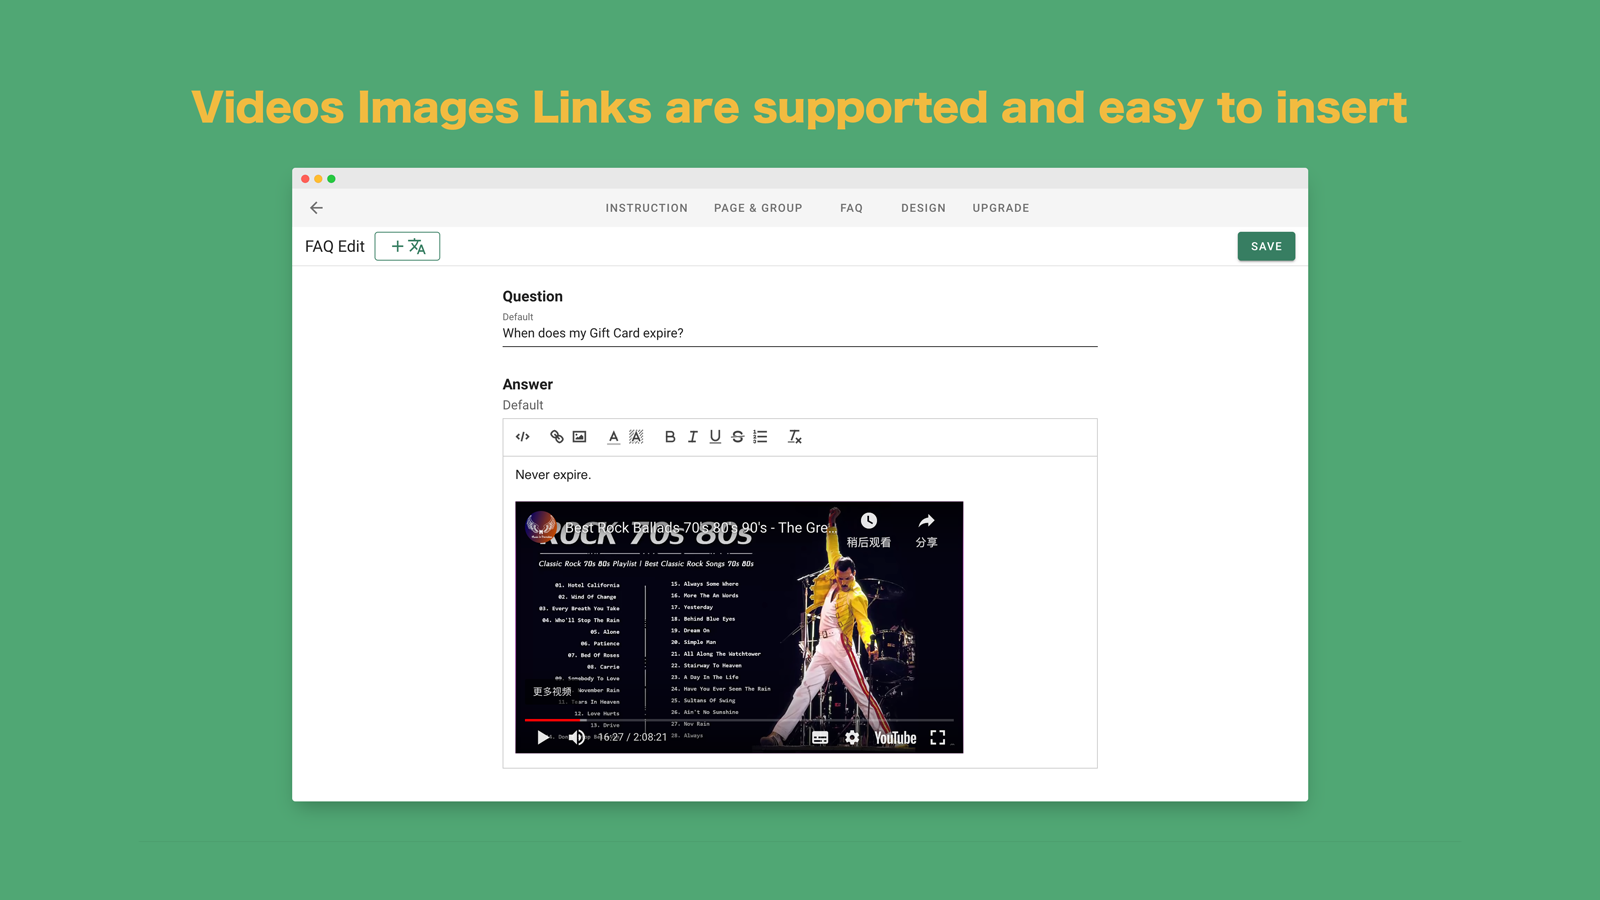 Support images youtube videos rich media custom CSS HTML code